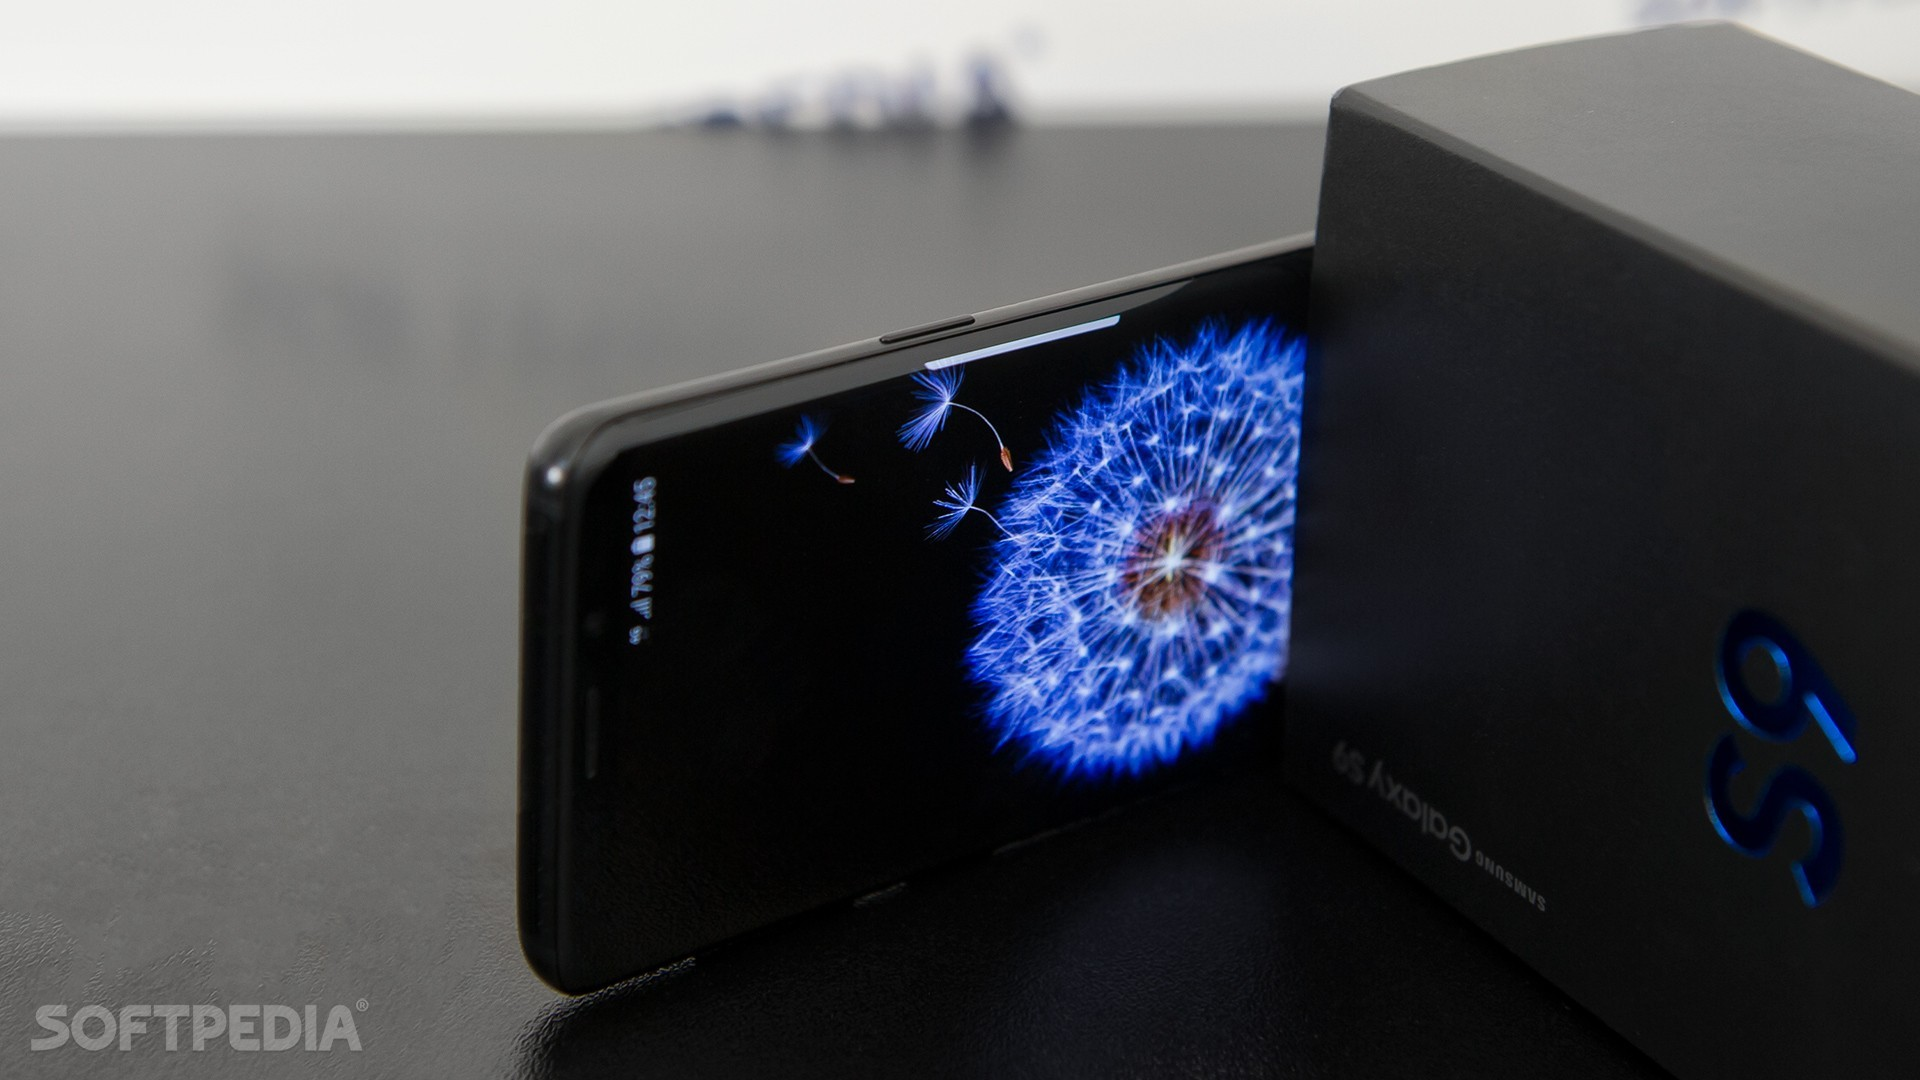 Samsung Pushes Back Galaxy S10 Launch To February